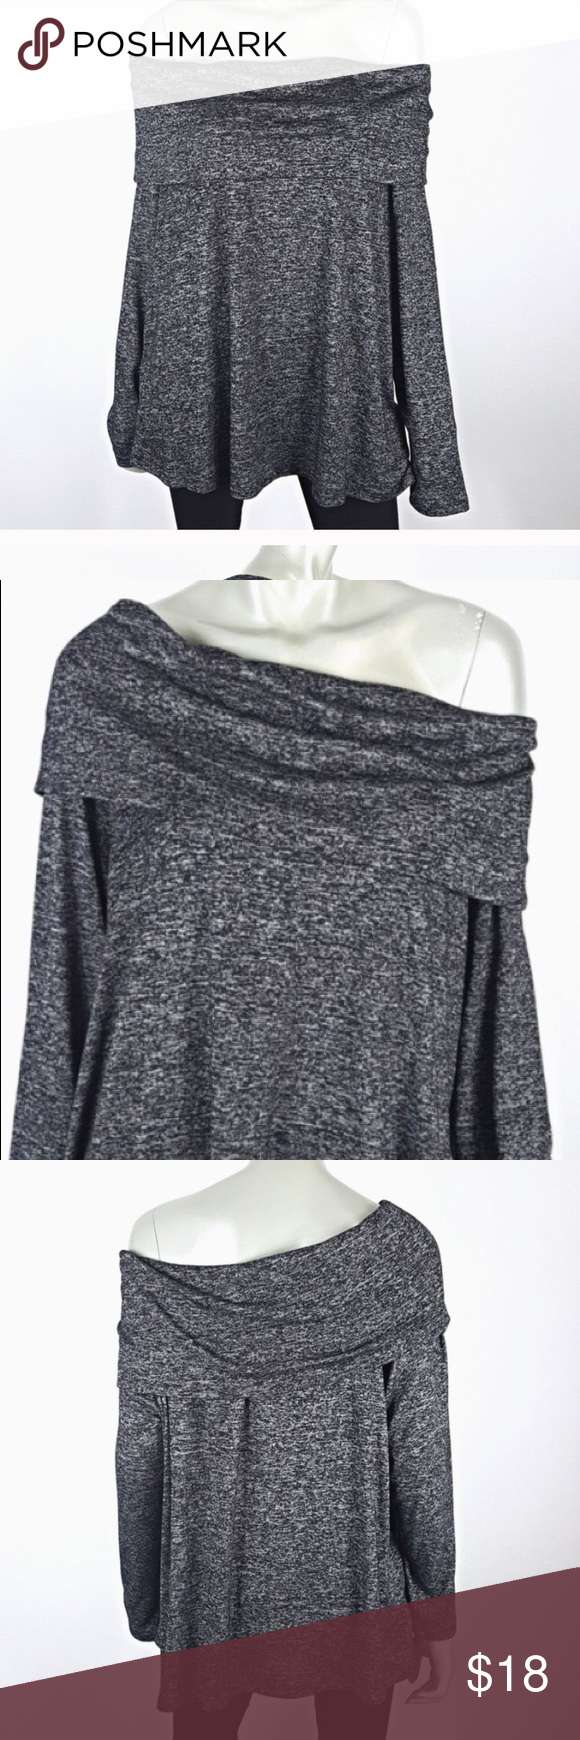 50b364b0a31 COMO Vintage- gray off the shoulder top- size 3X Stylish and comfortable  top from